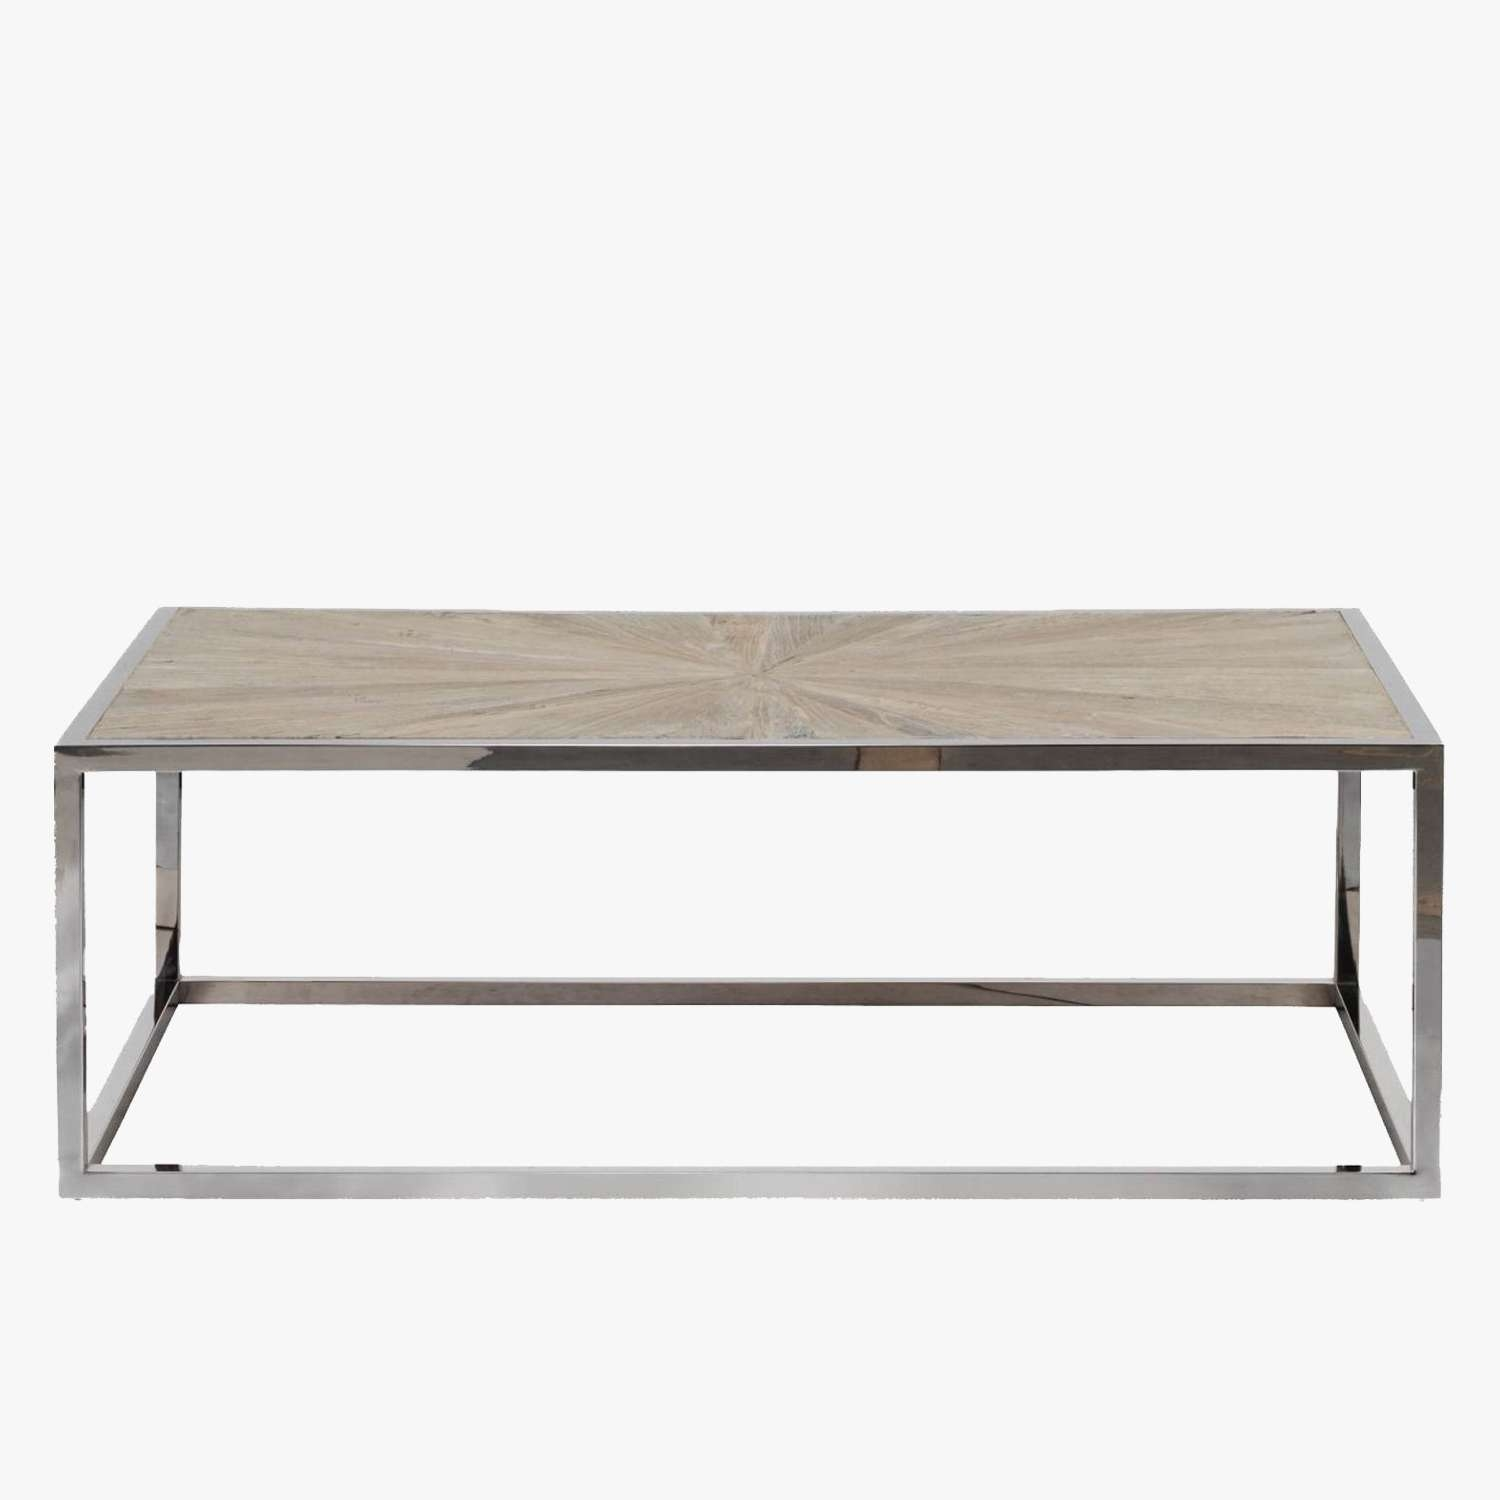 Parquet Top Chrome Coffee Table – Shop Coffee Tables – Dear Keaton Inside Popular Chrome Coffee Tables (View 16 of 20)